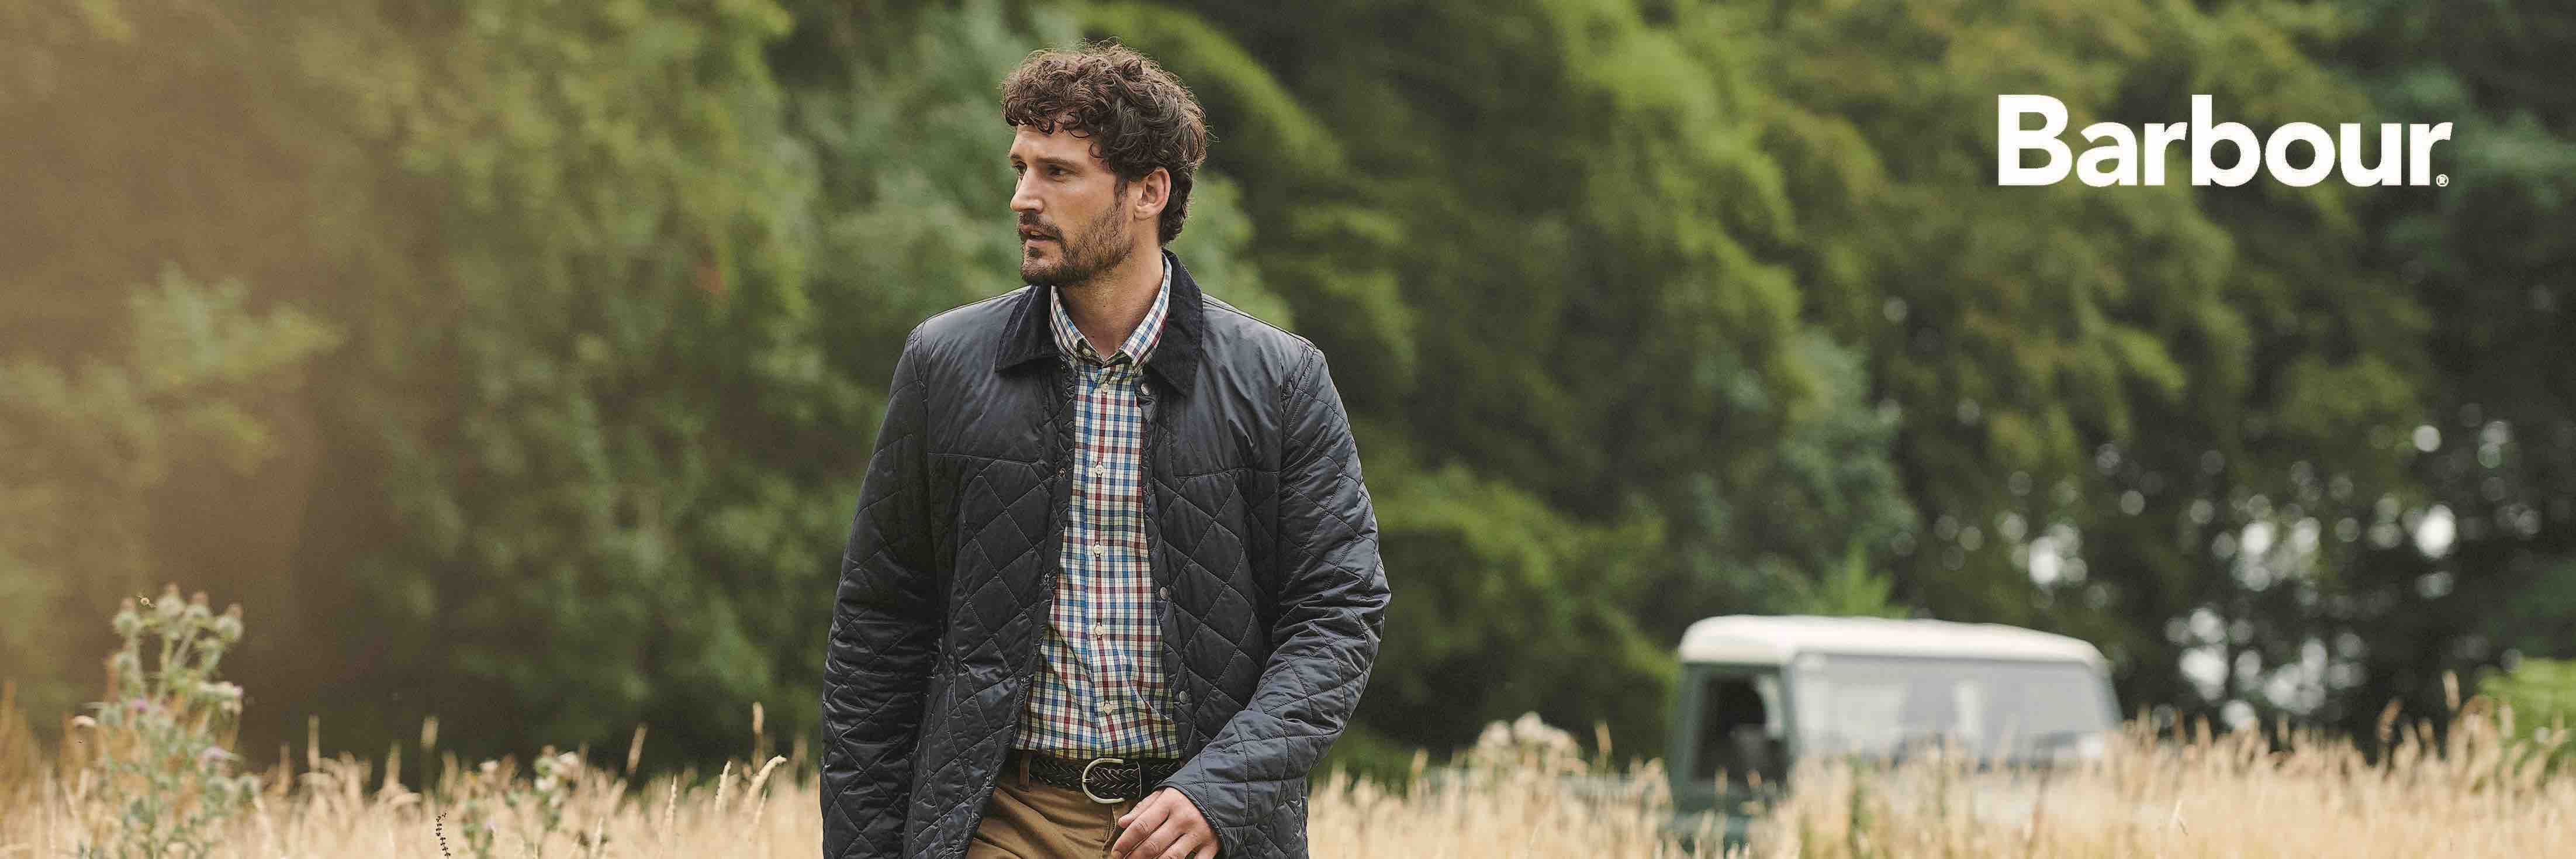 Webbanner Barbour Homme 4- 750x250px